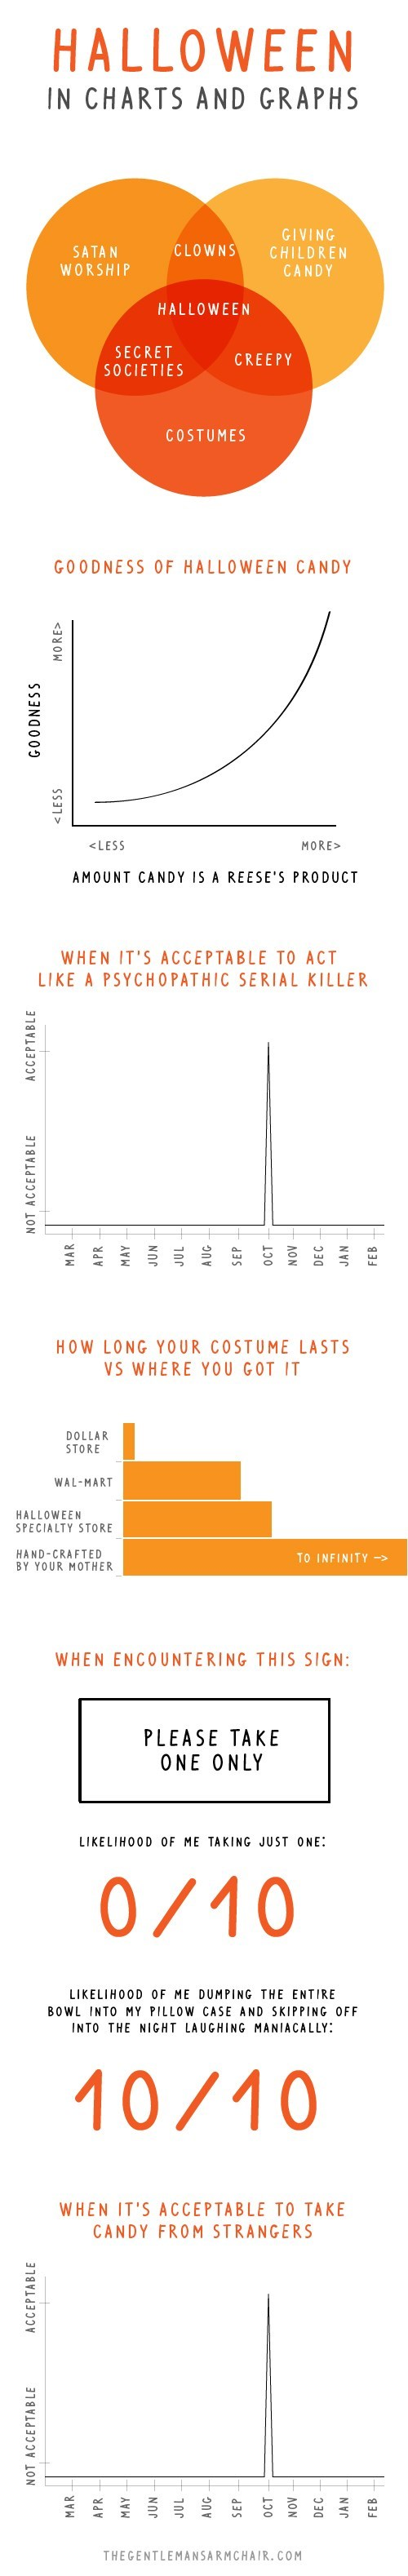 Chart,halloween,infographic,holidays,hallowmeme,g rated